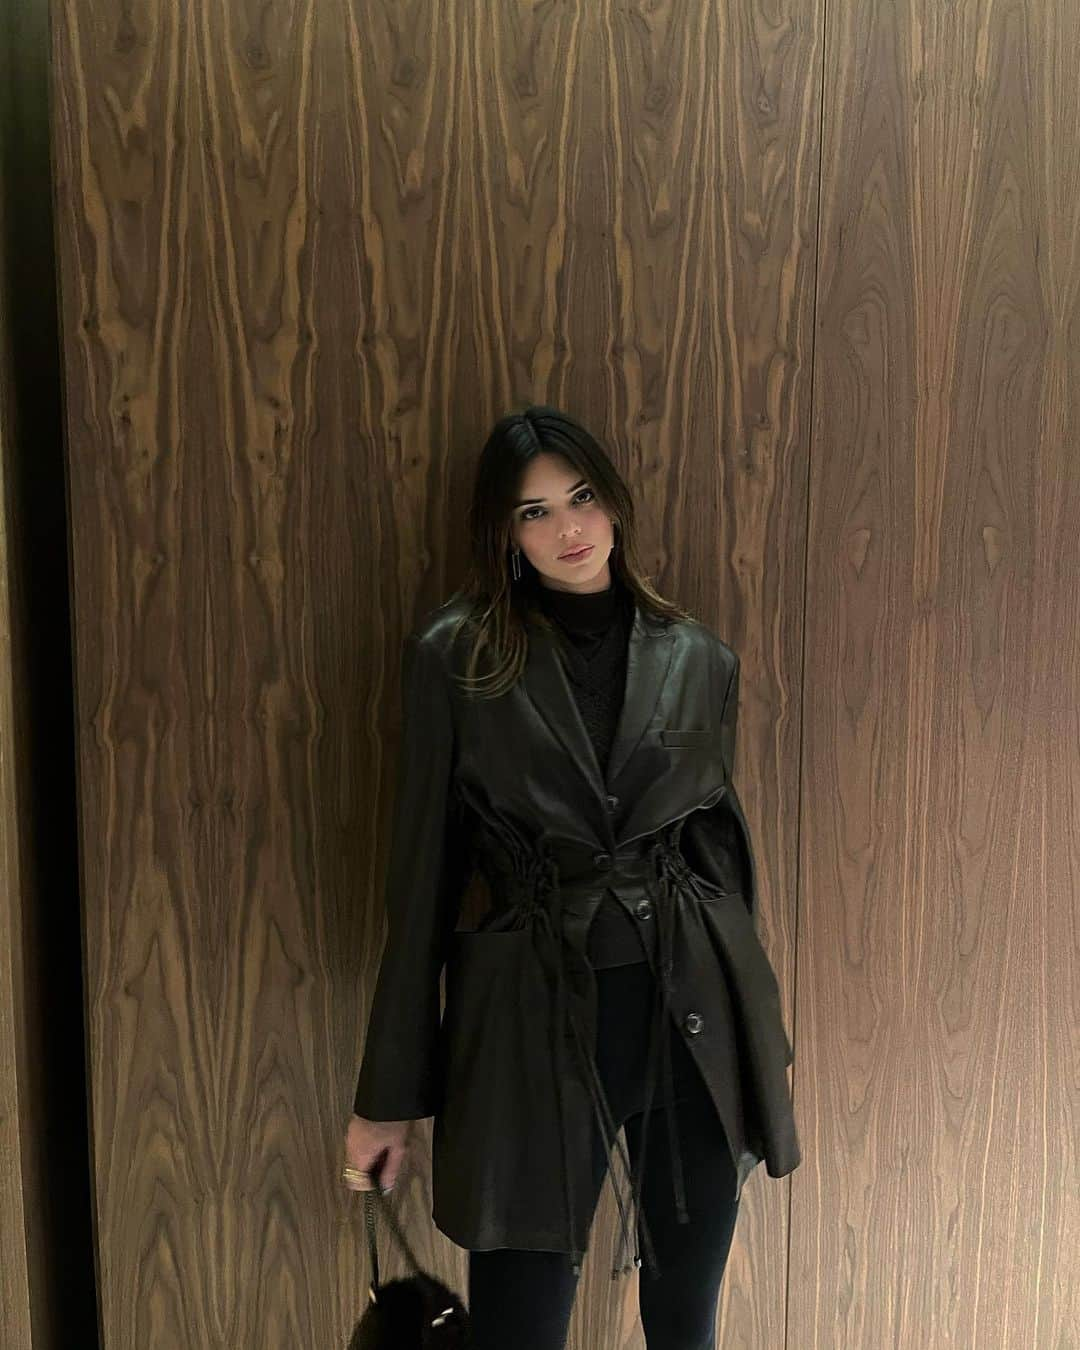 Kendall Jenner talks about her anxiety